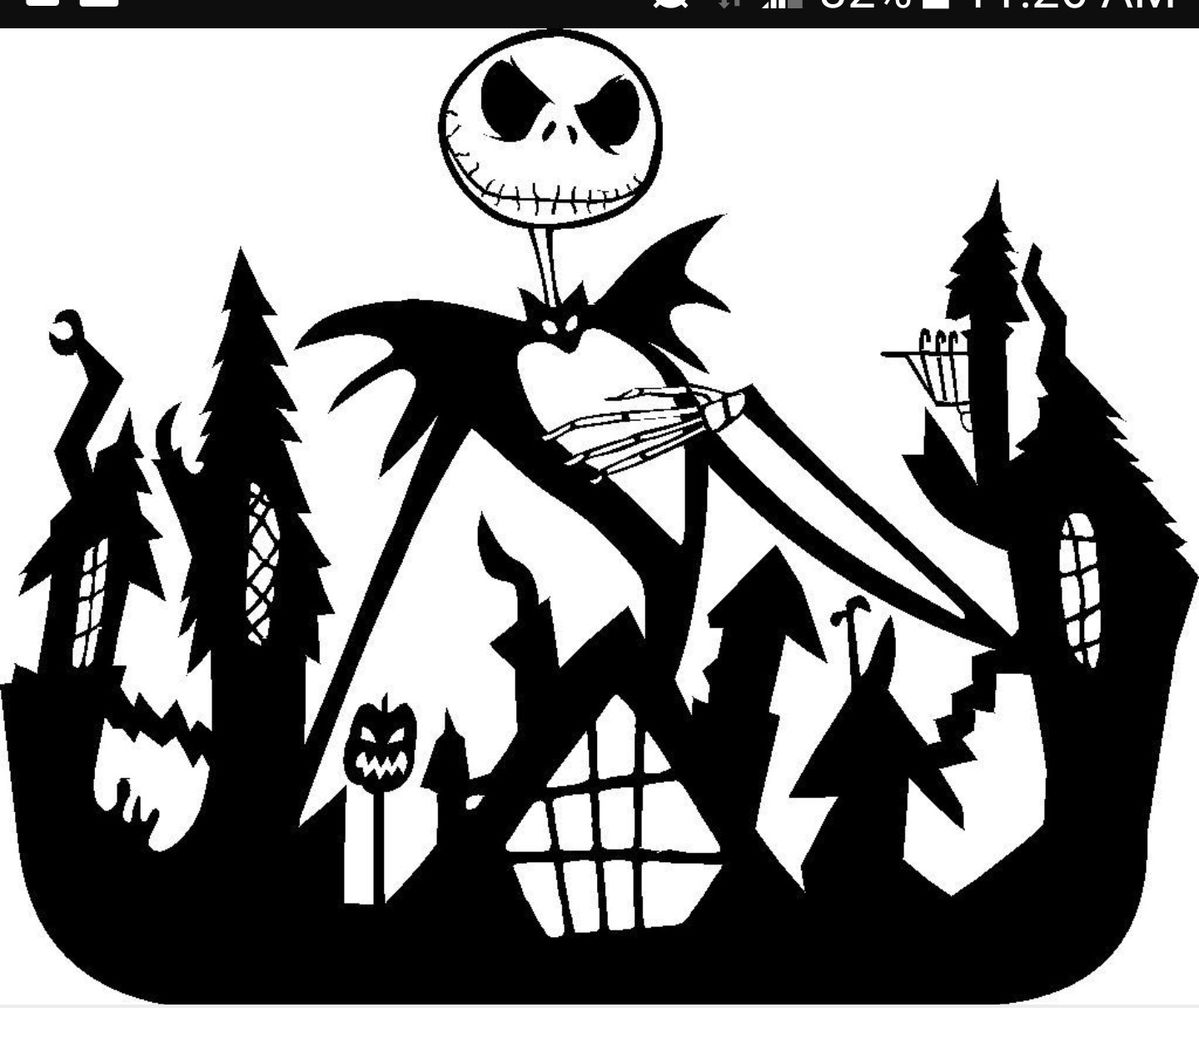 Pin by C.C. Conley on SVG Jack skellington drawing